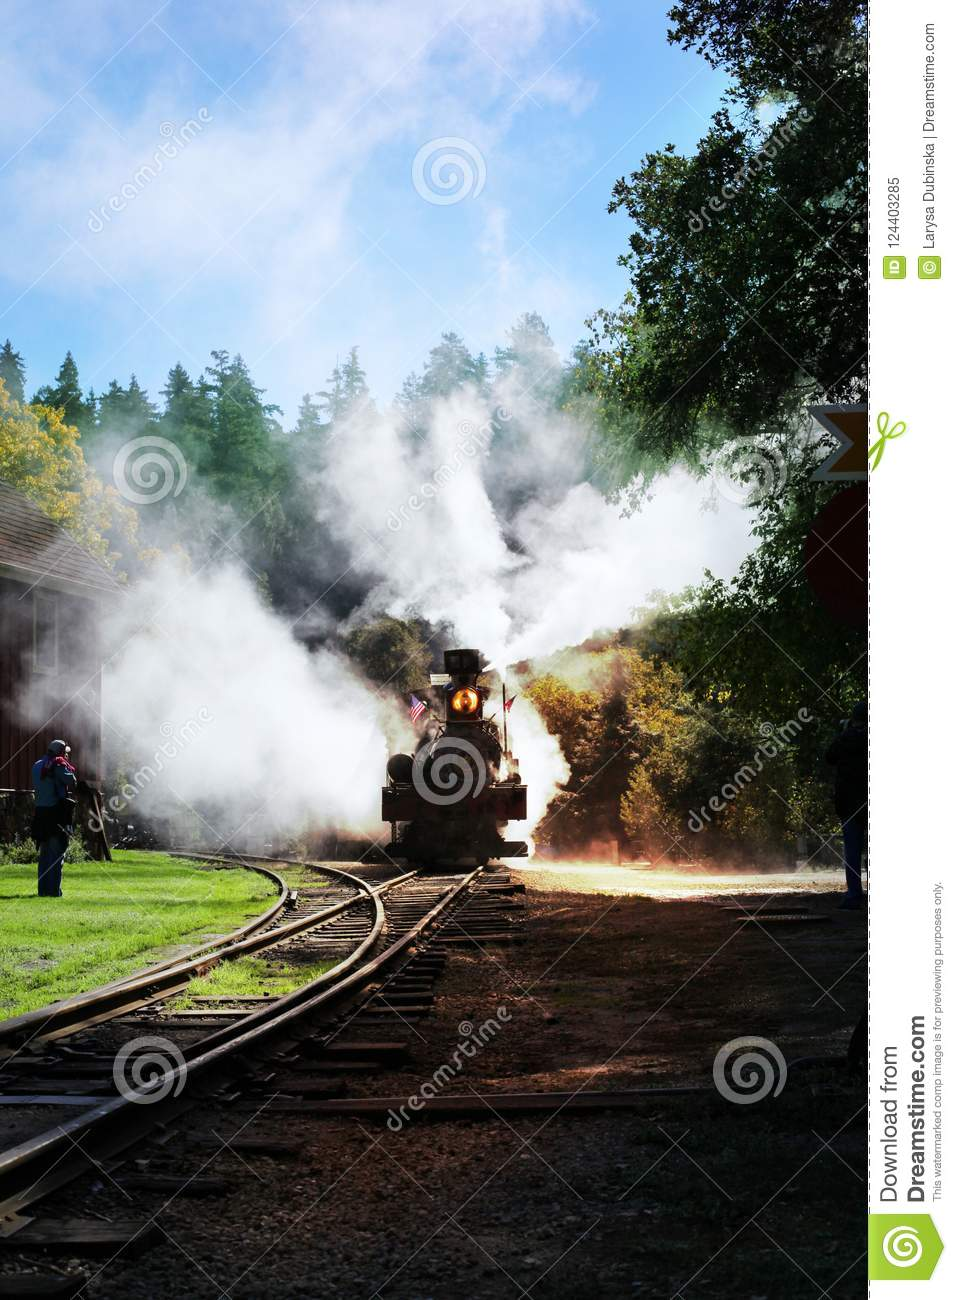 An ancient train moves along the rails releasing smoke in the sun in the forest